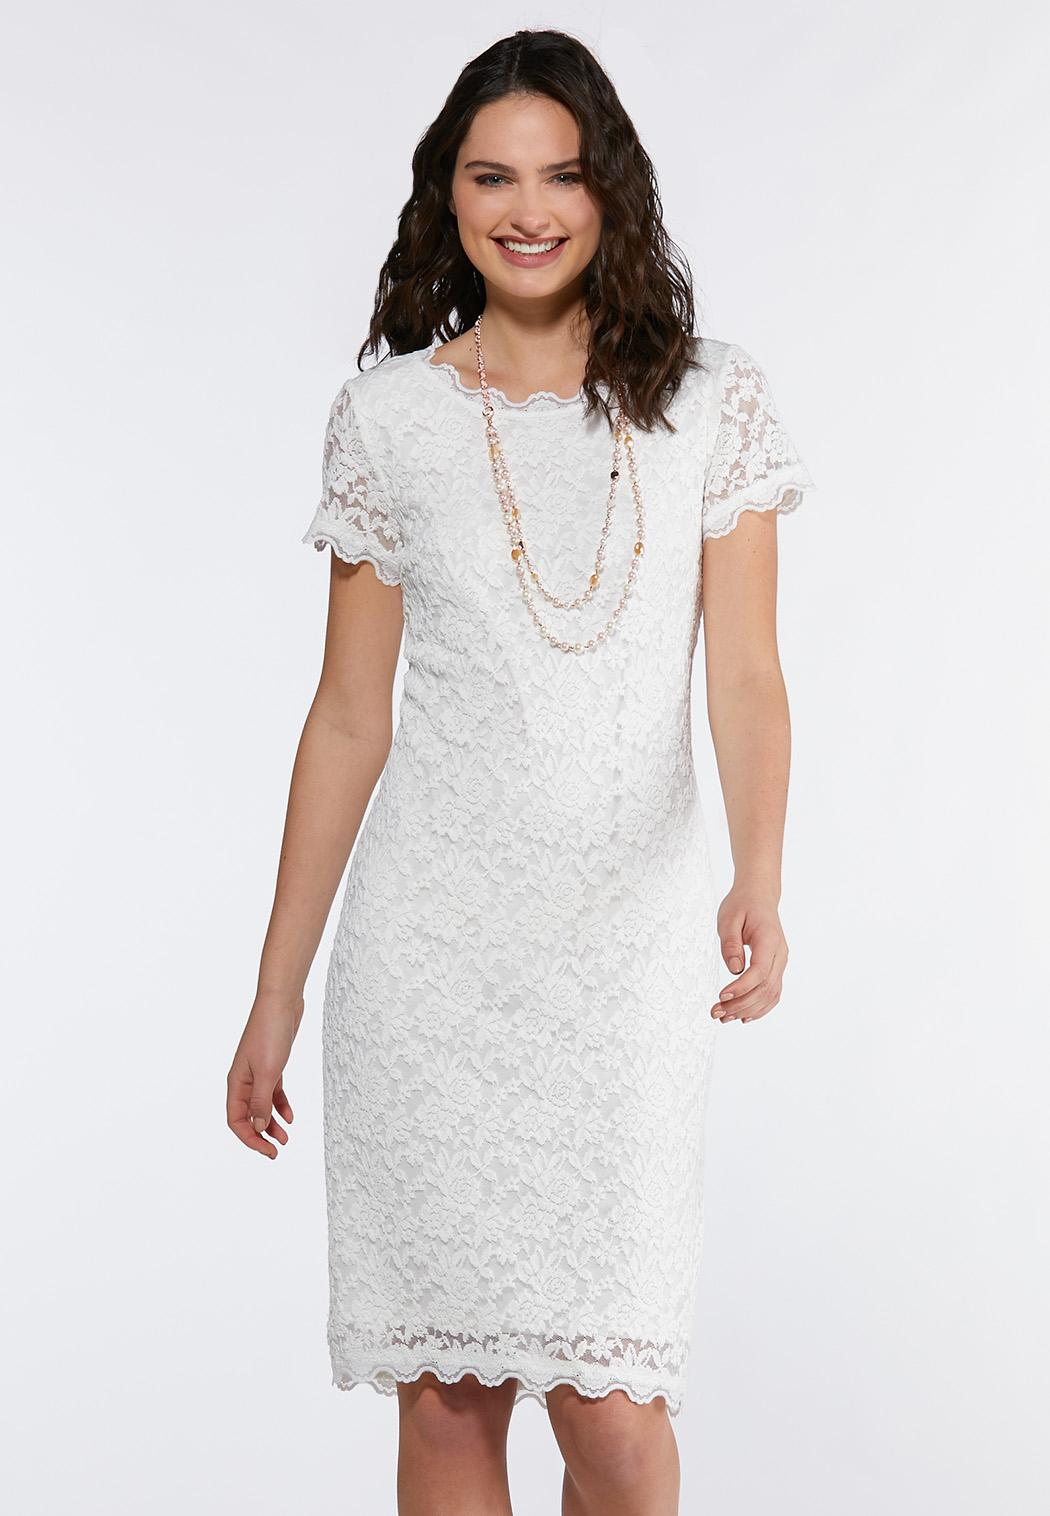 Plus Size White Lace Midi Dress Midi Cato Fashions